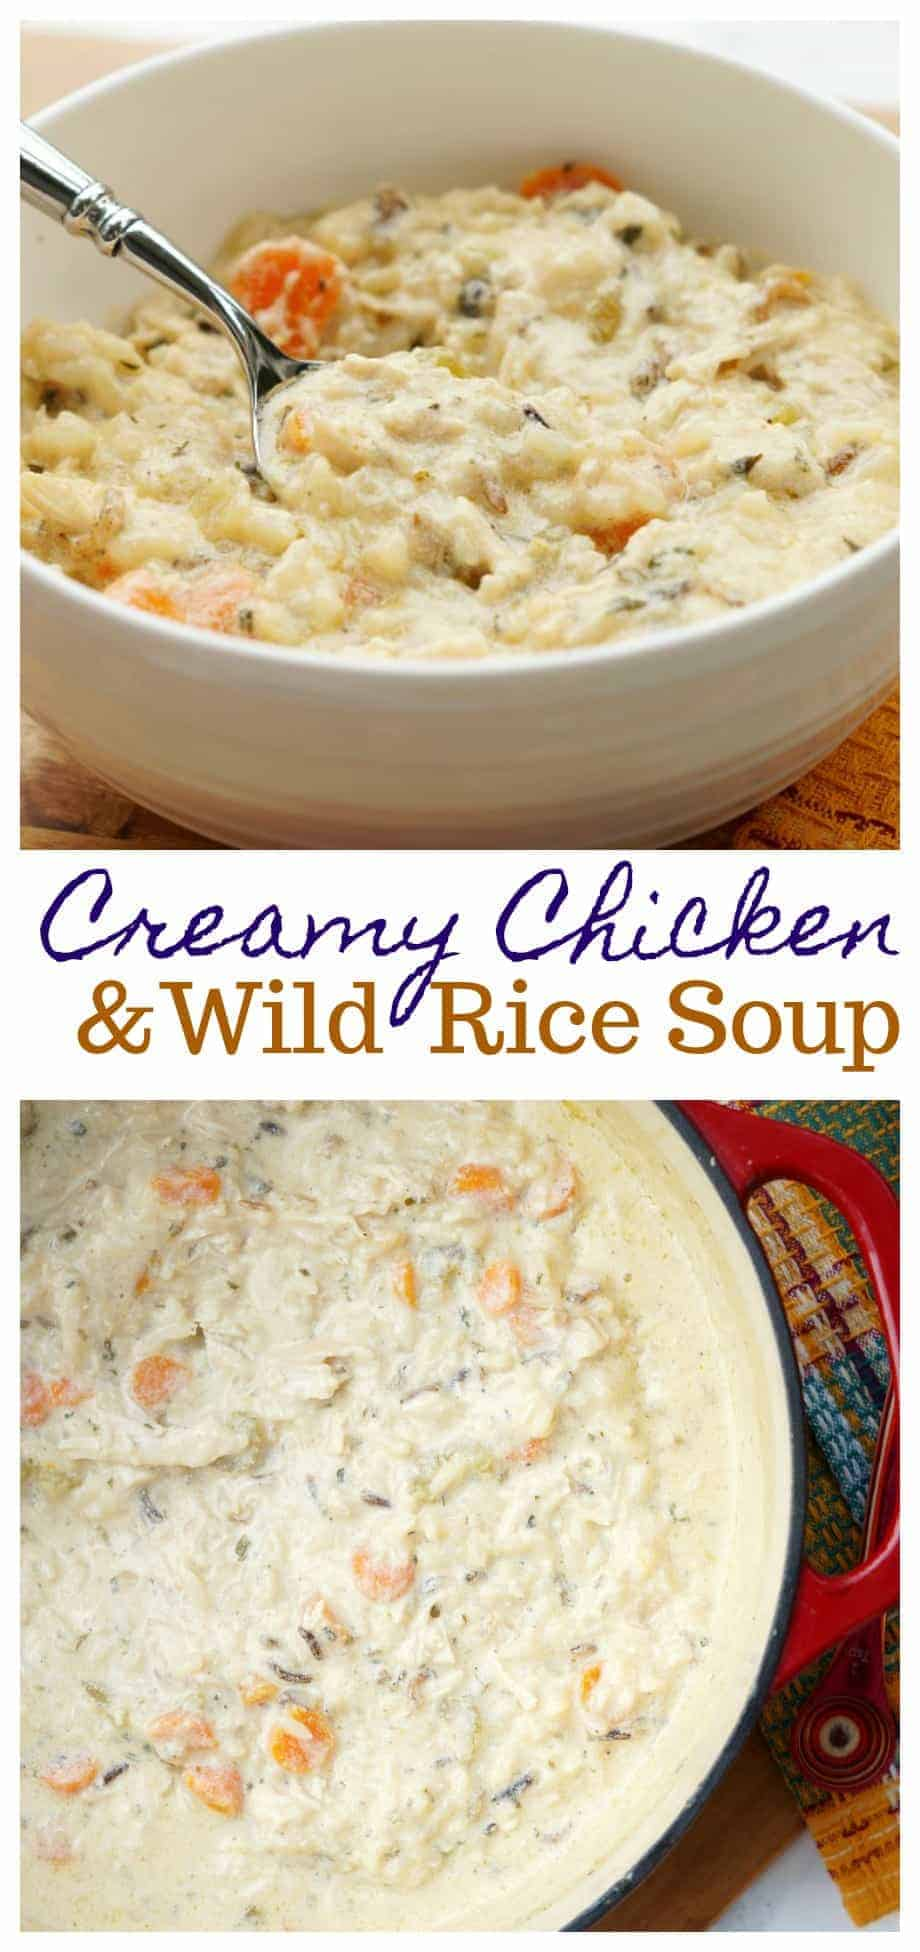 This Quick and Easy Chicken and Wild Rice Soup is perfect for dreary winter days. Creamy and comforting and made it under 30 minutes, your family will love this easy soup recipe!